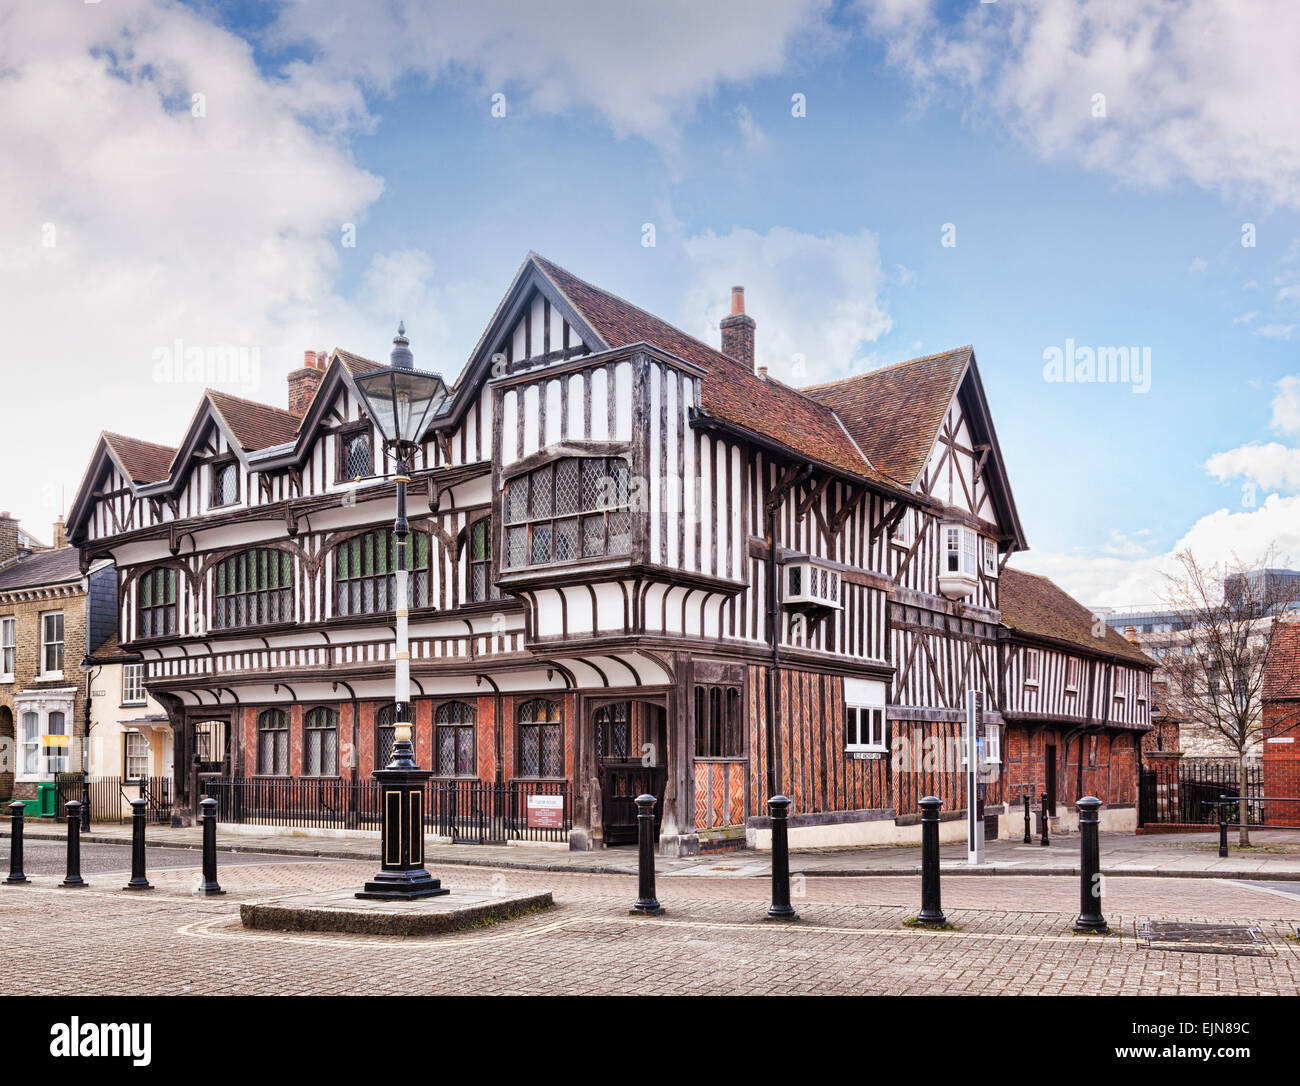 Tudor House Museum, a 15th century Grade 1 listed building in Southampton, Hampshire, England. - Stock Image